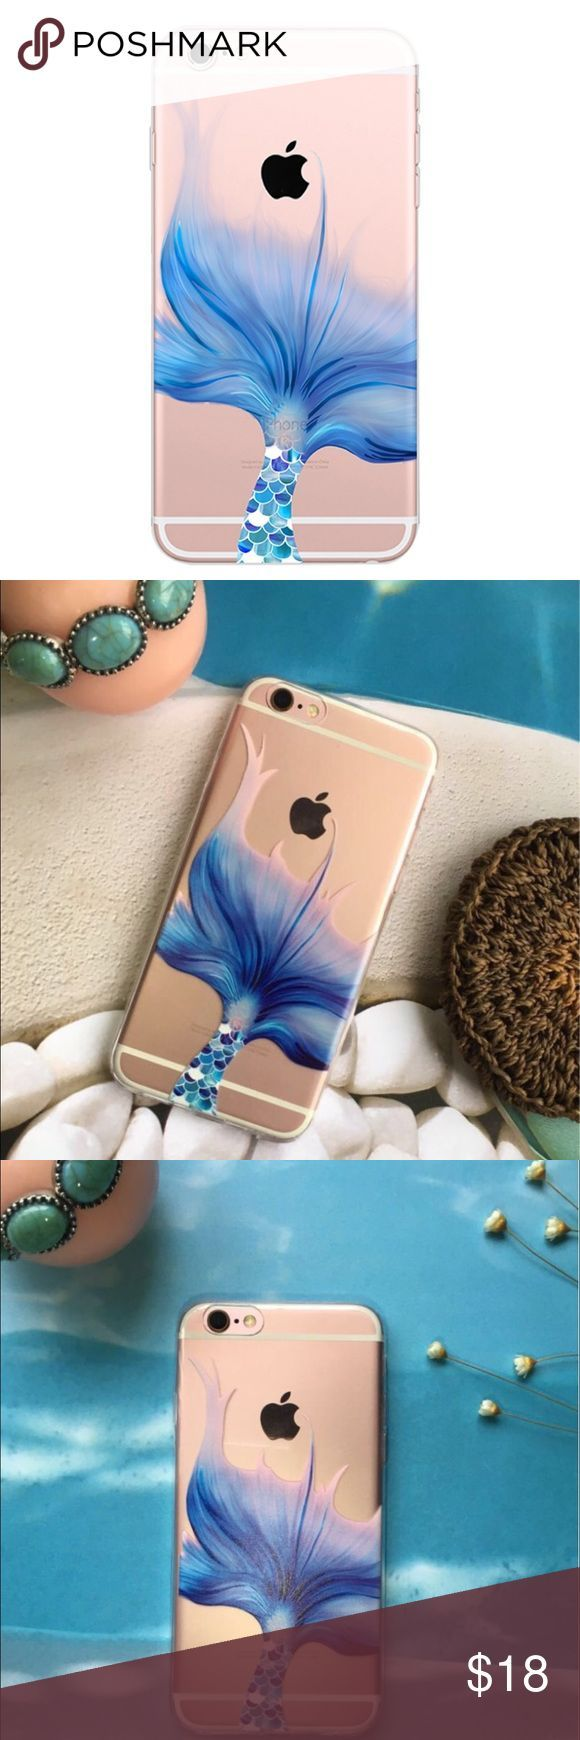 Mermaid Tail Rubber Iphone Case Available for iphone 6/6s/6plus.